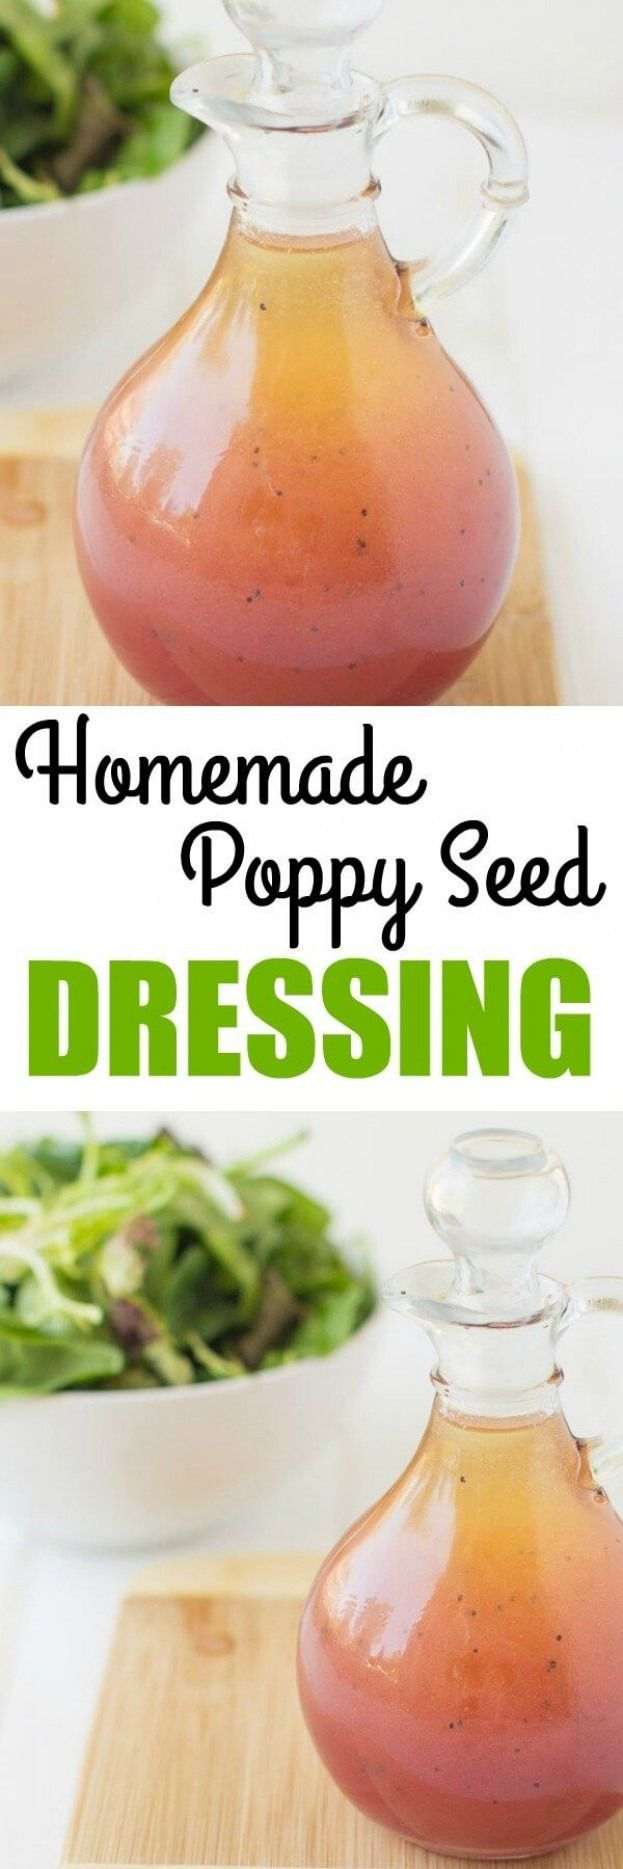 A deliciously sweet Poppy Seed Dressing made with 6 pantry staples! Perfect for fruit and vegetable salads this makes any side dish taste like dessert! deliciously sweet Poppy Seed Dressing made with 6 pantry staples! Perfect for fruit and vegetable salads this makes any side dish taste like dessert!